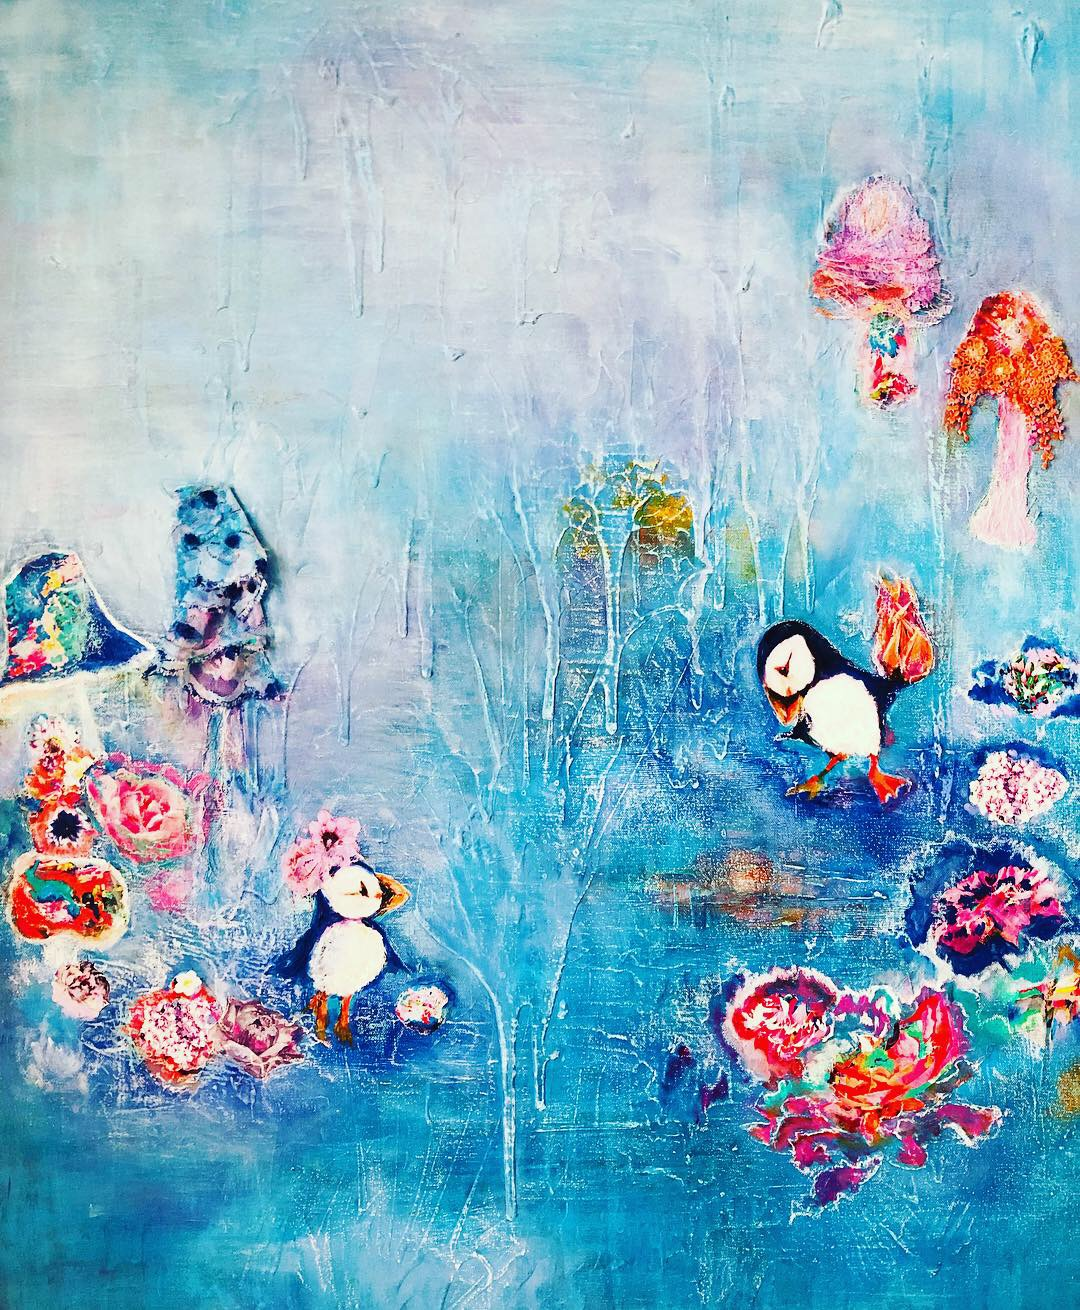 The Puffins: The First Date, 2019  40 x 30 x 1.5 in  Lace, Art Paper, Acrylic, Pastel and Oil